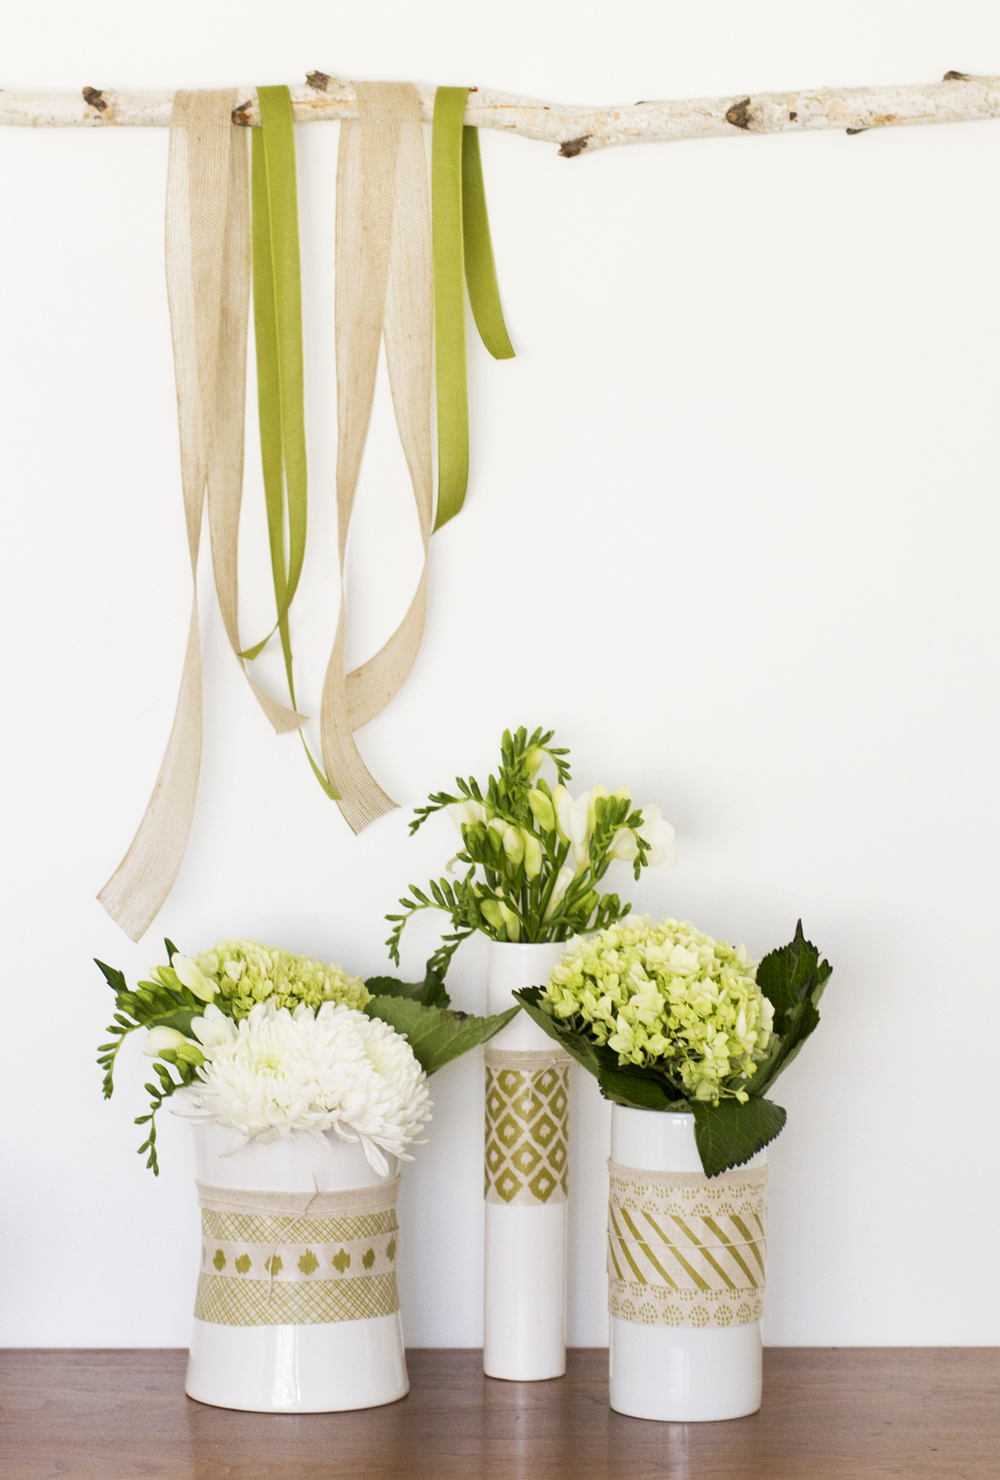 Custom Fabric Vases A Subtle Revelry